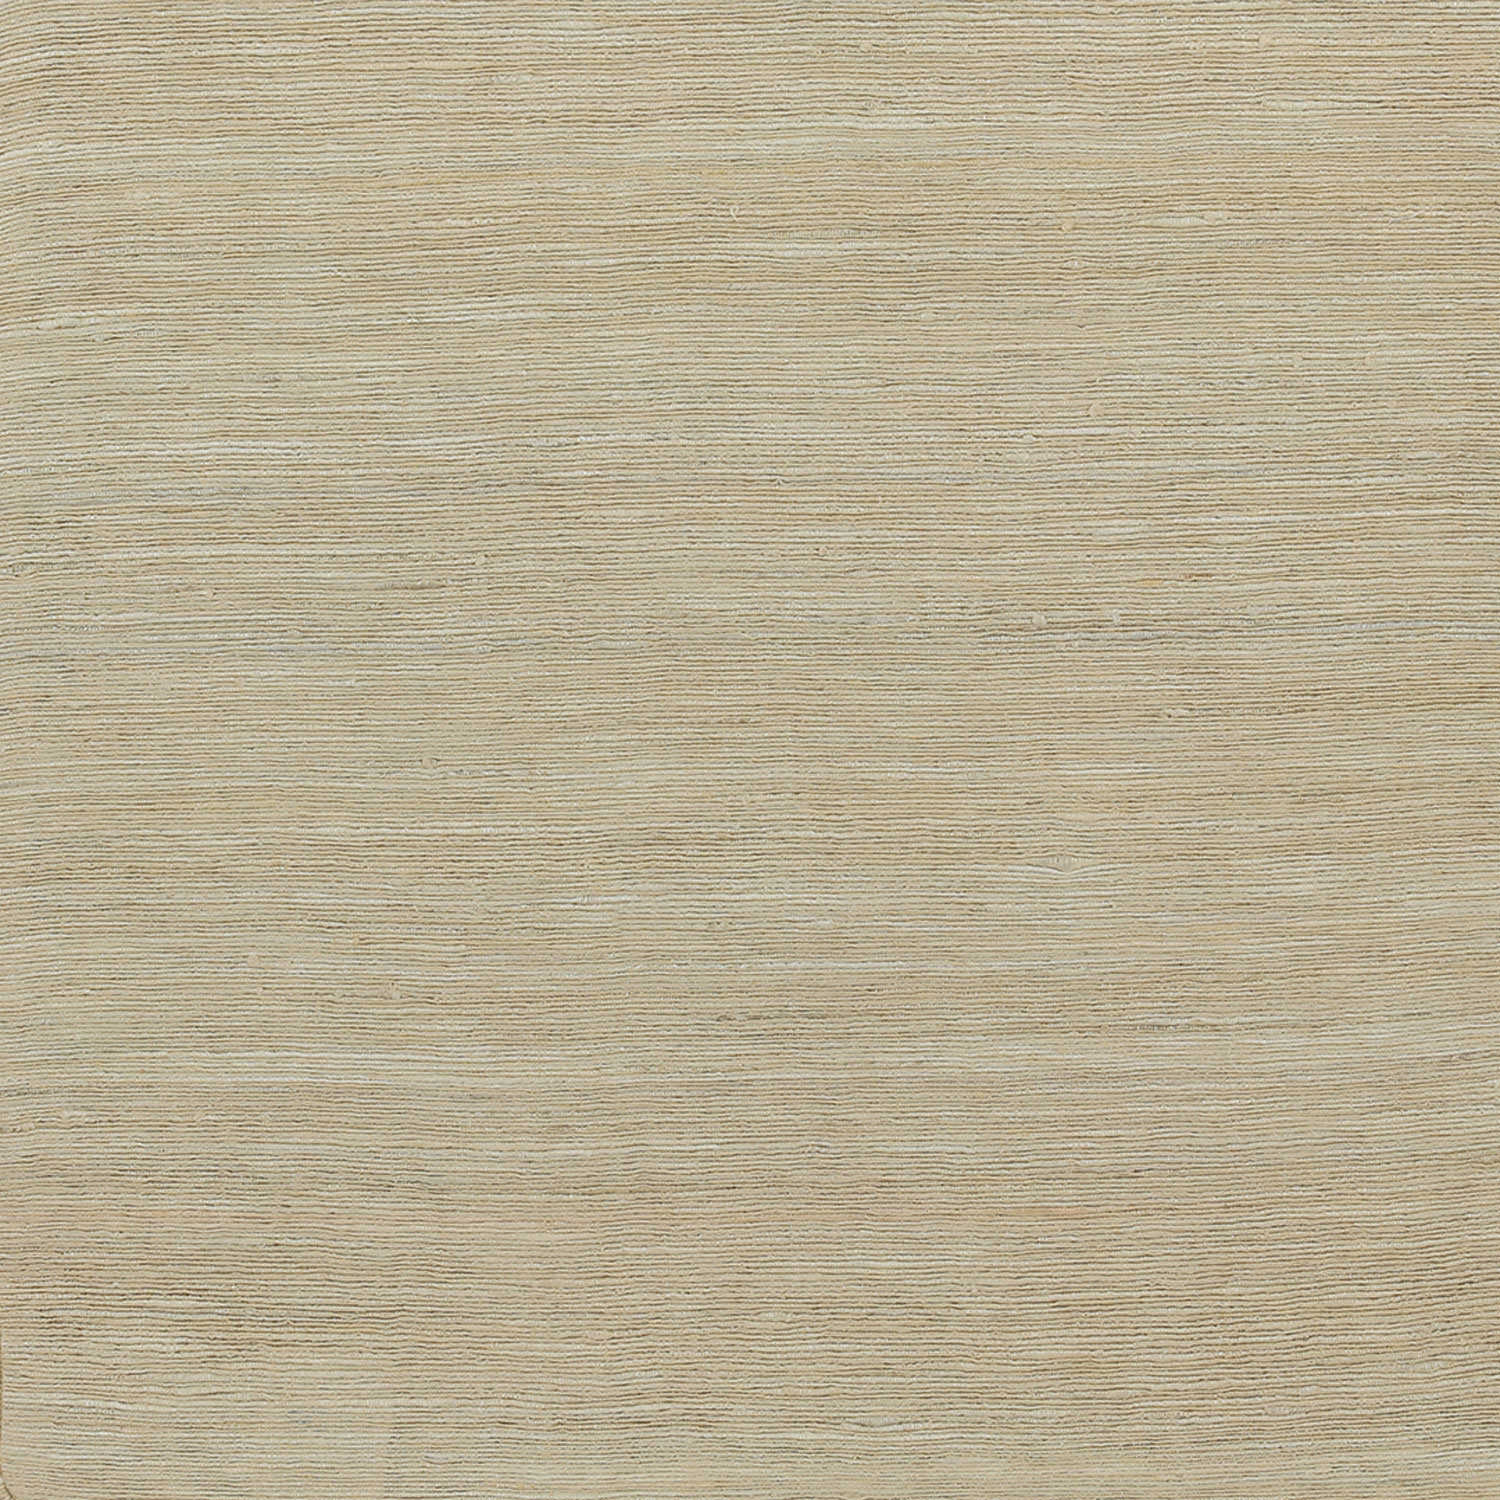 Cancun Sand Raw Silk Swatch